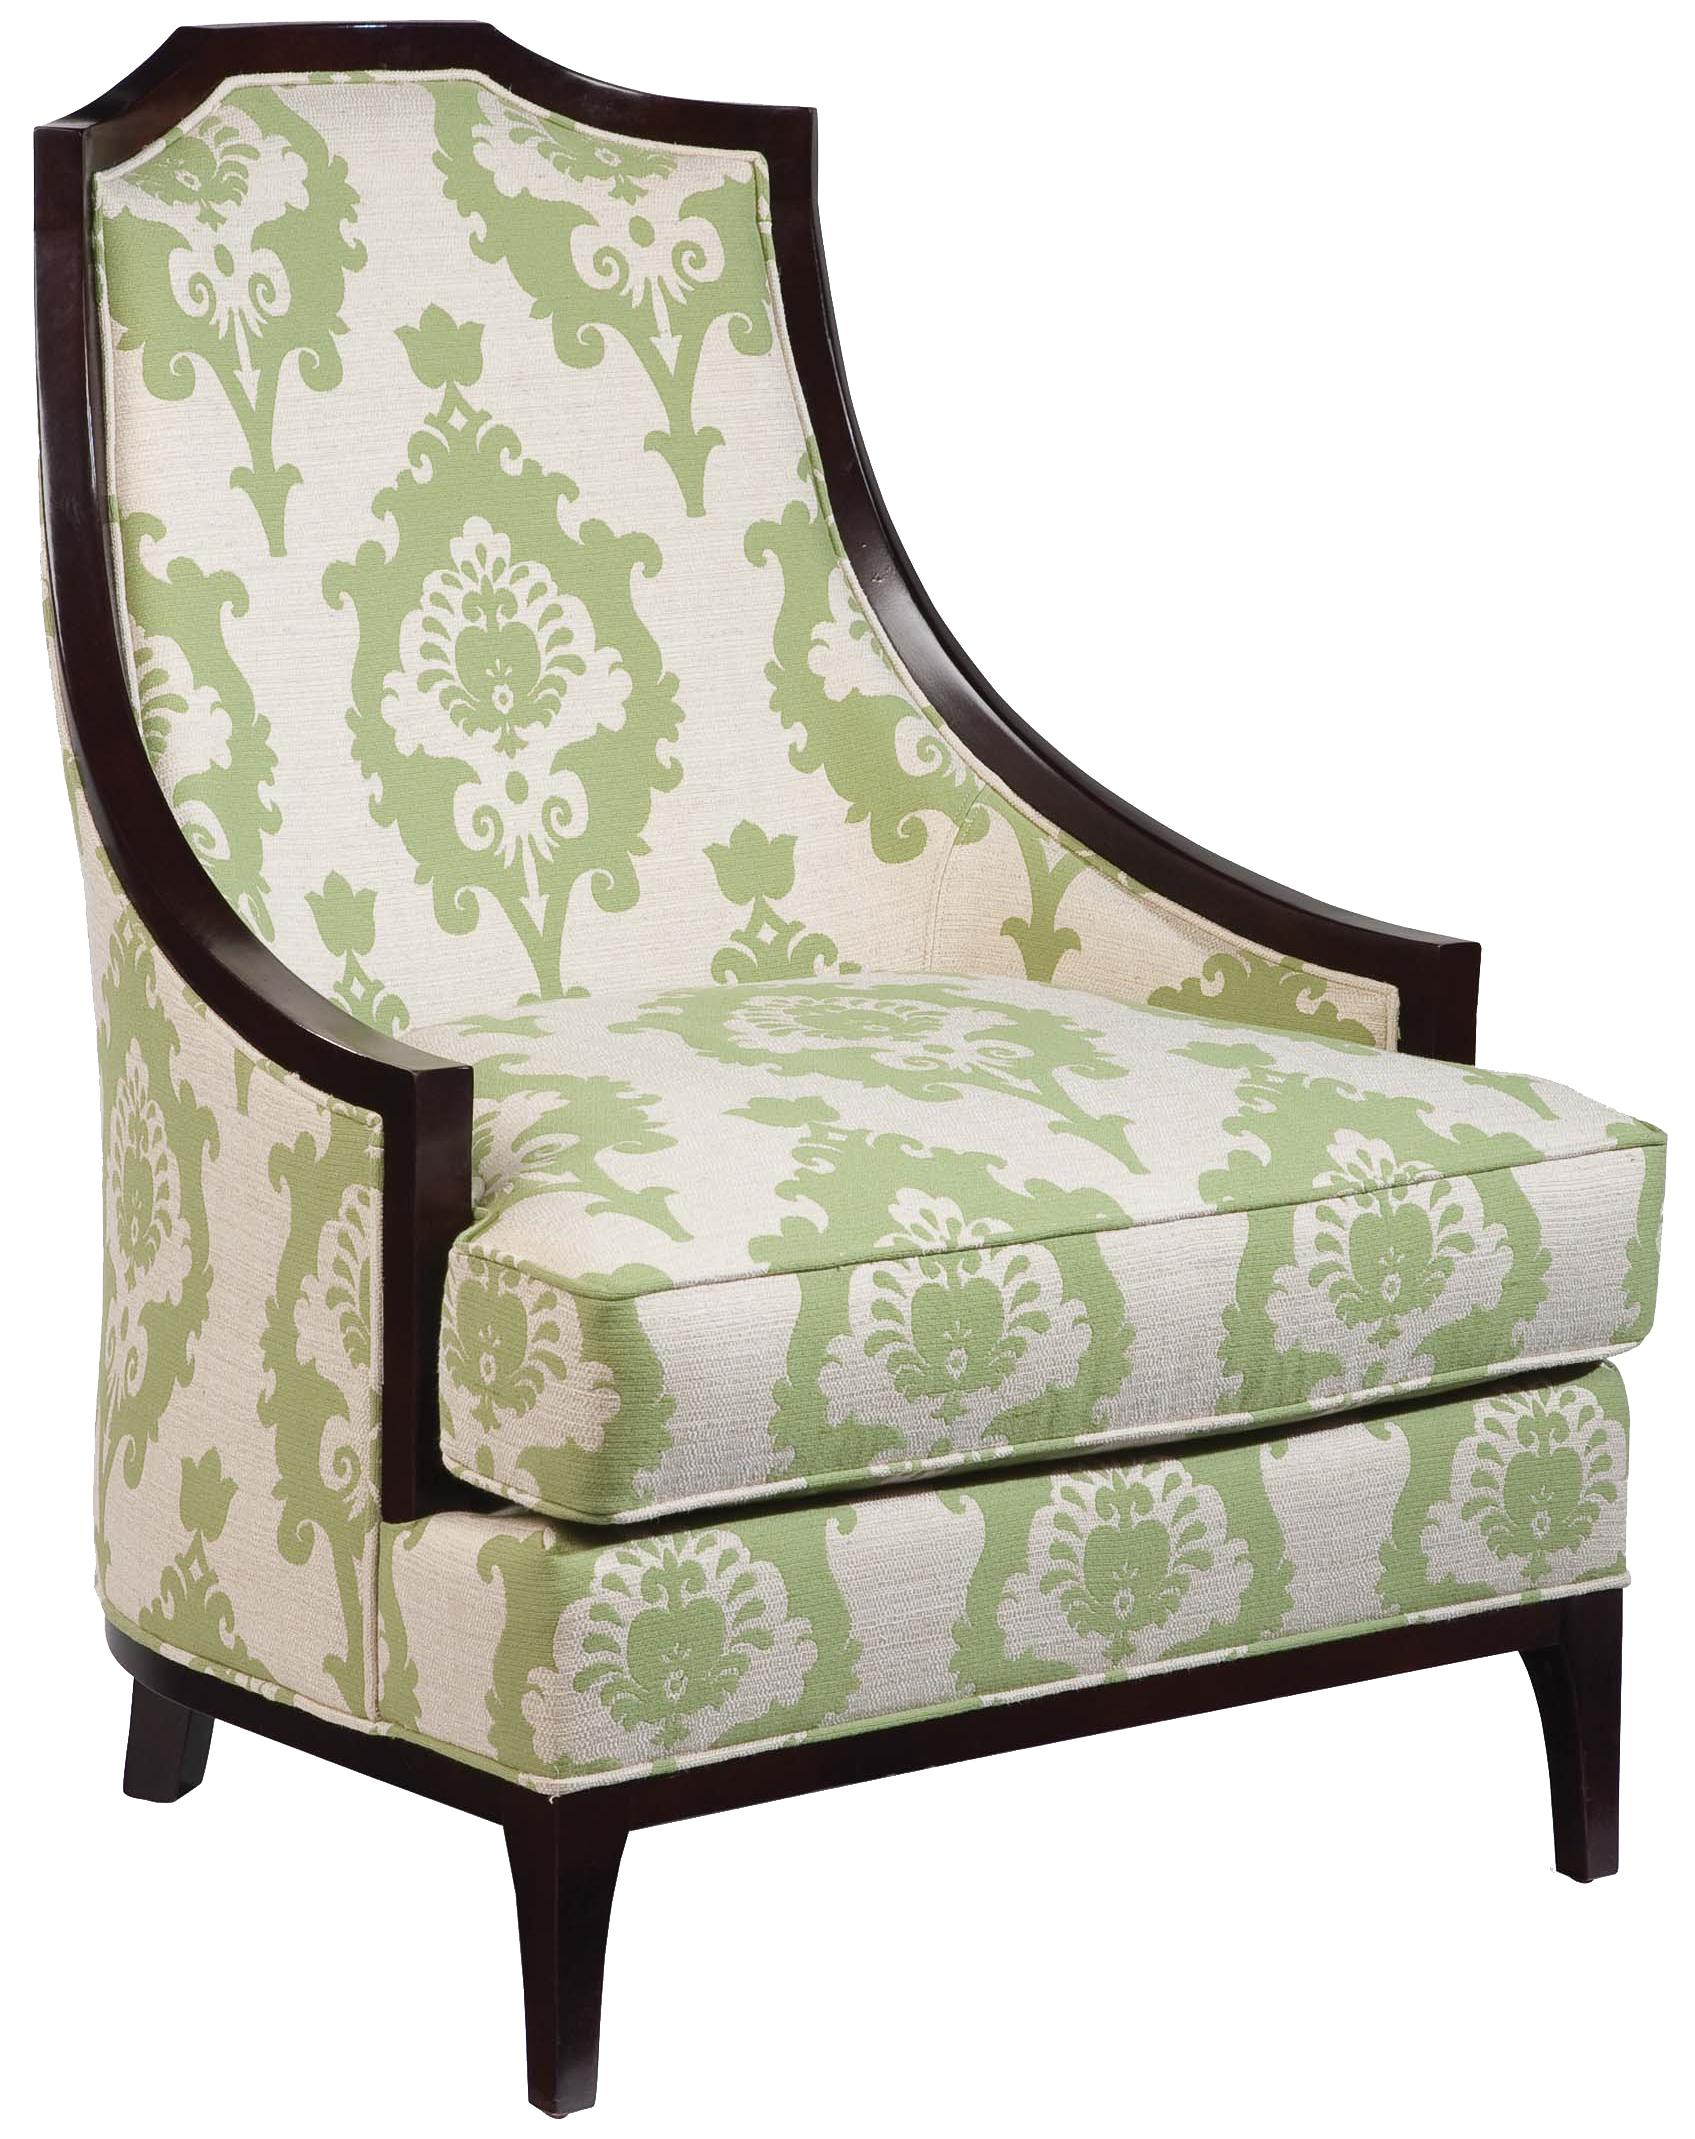 Fairfield Chairs Victorian Lounge Chair - Item Number: 6009-01